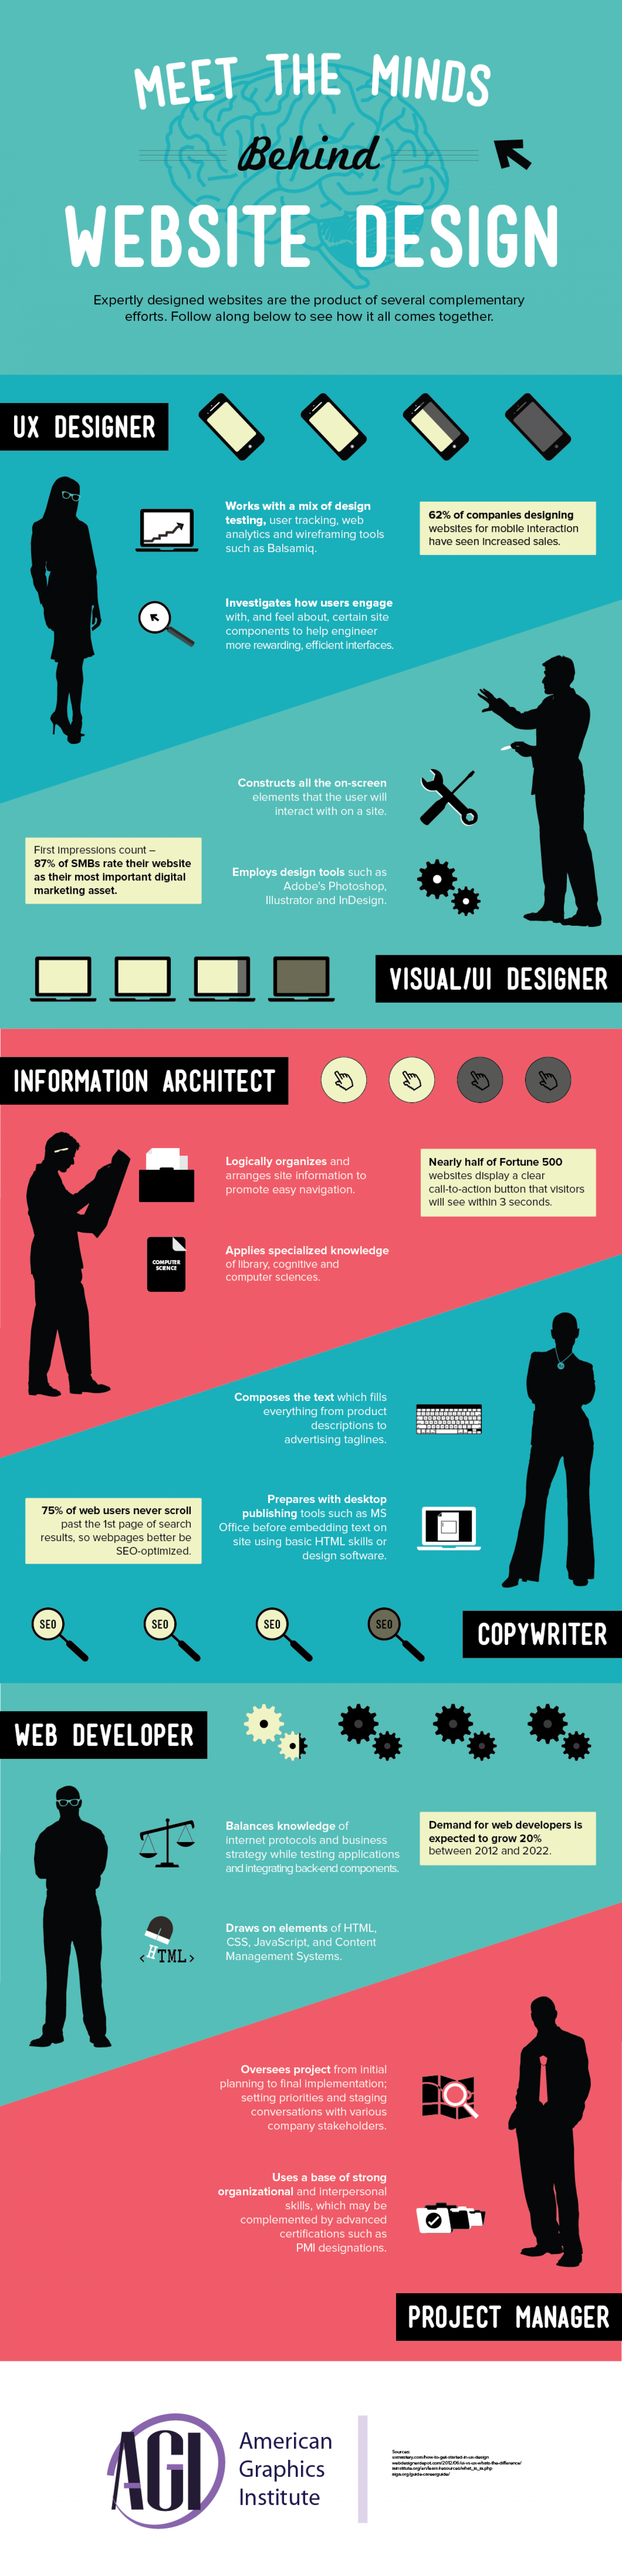 Meet the Minds Behind Website Design Infographic